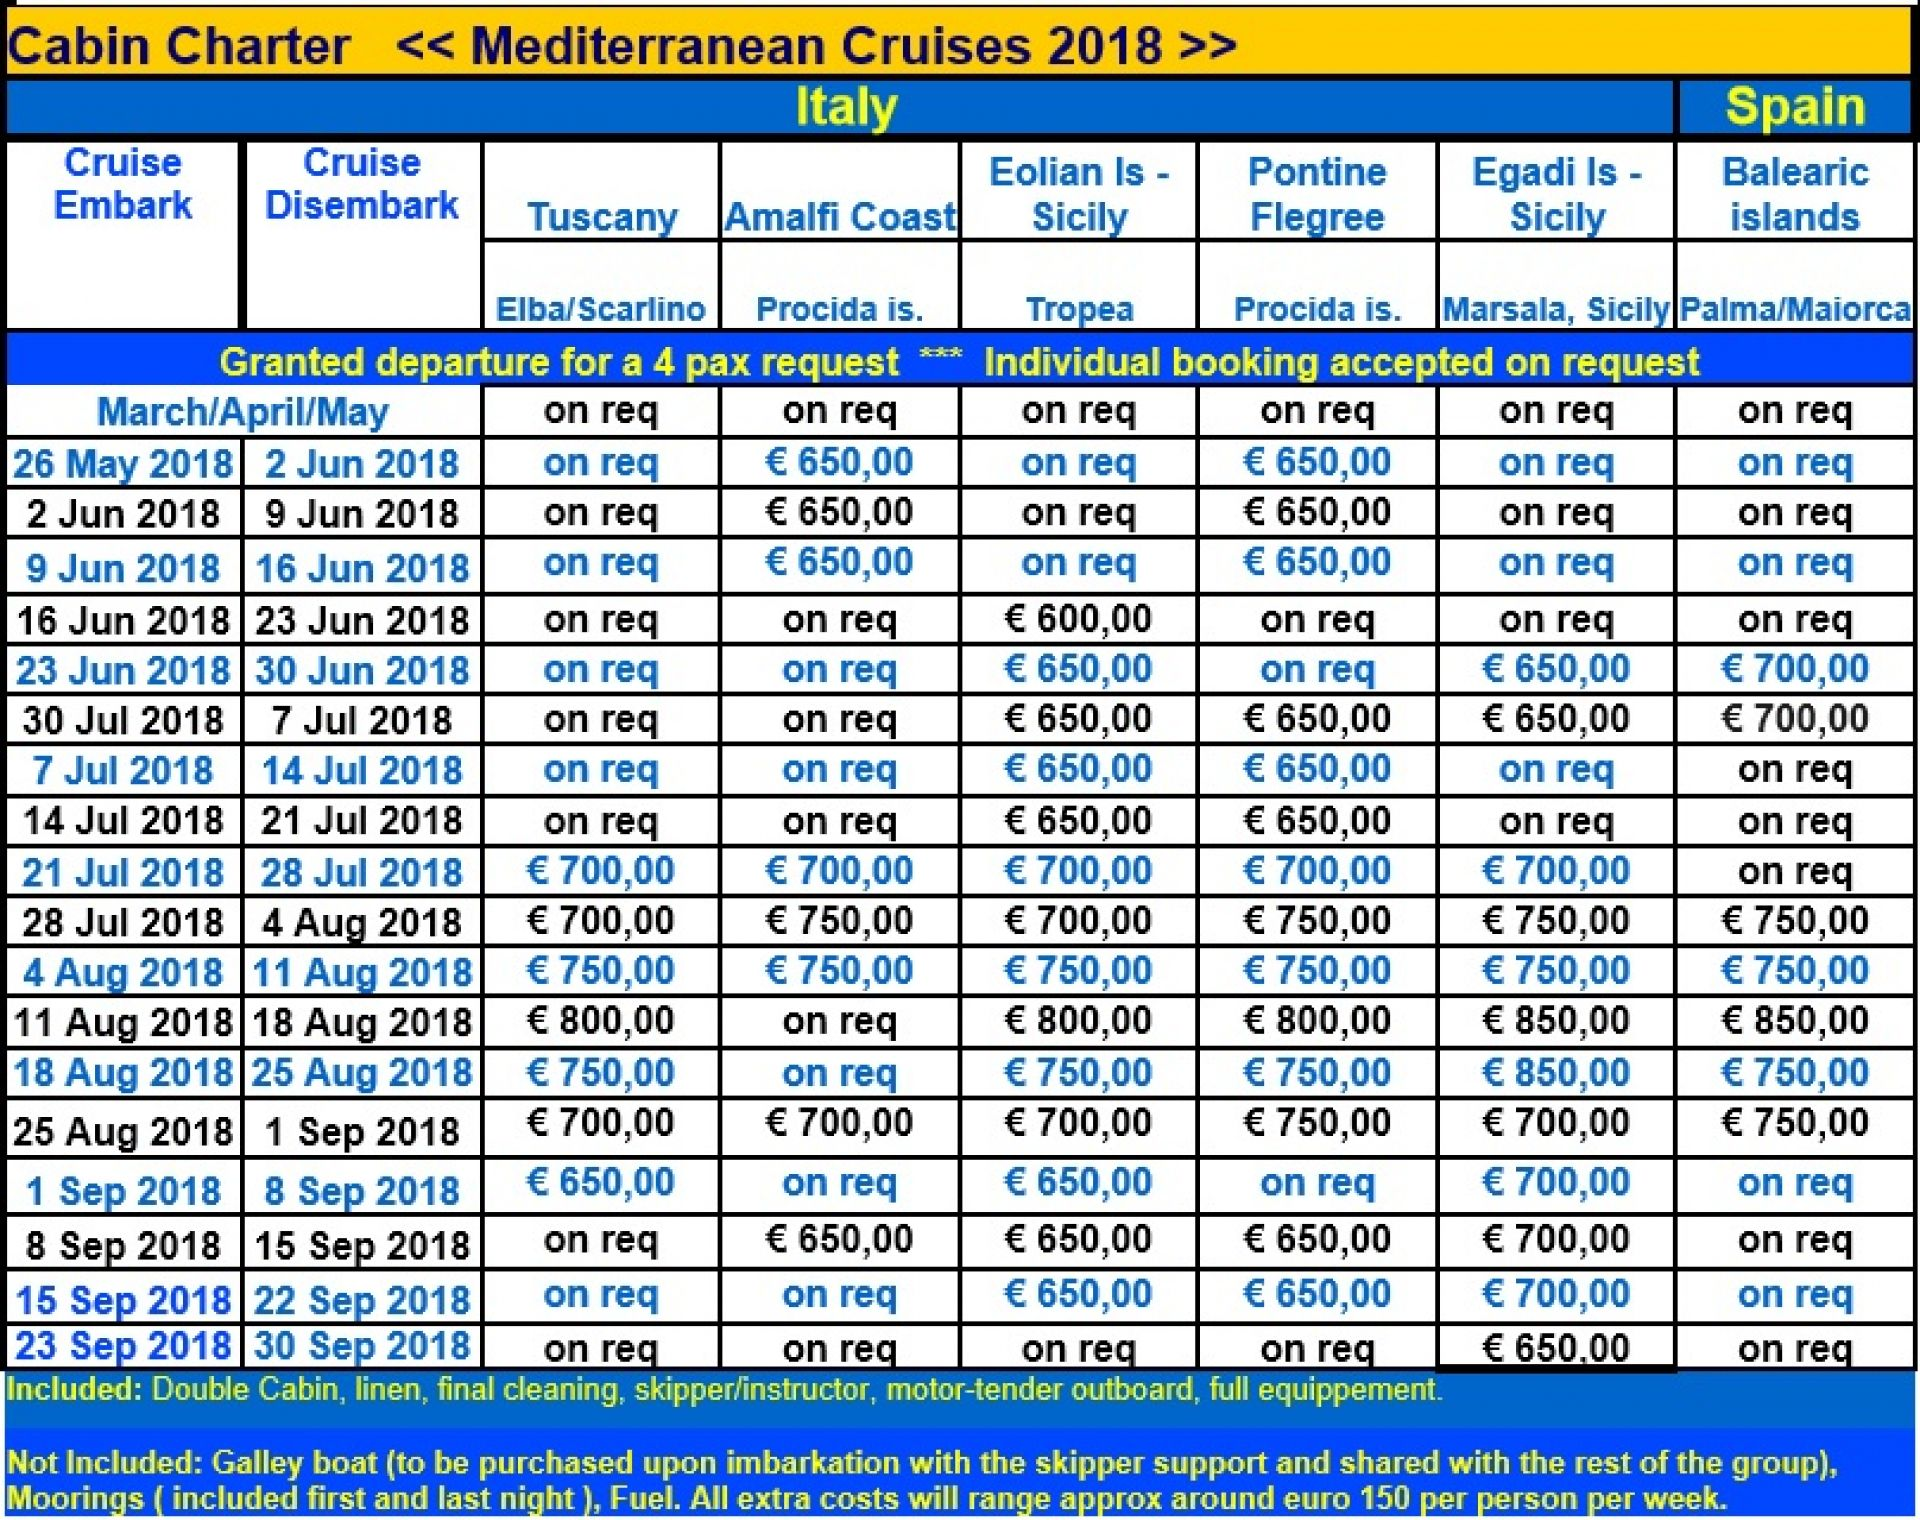 cabin charter dates Italy